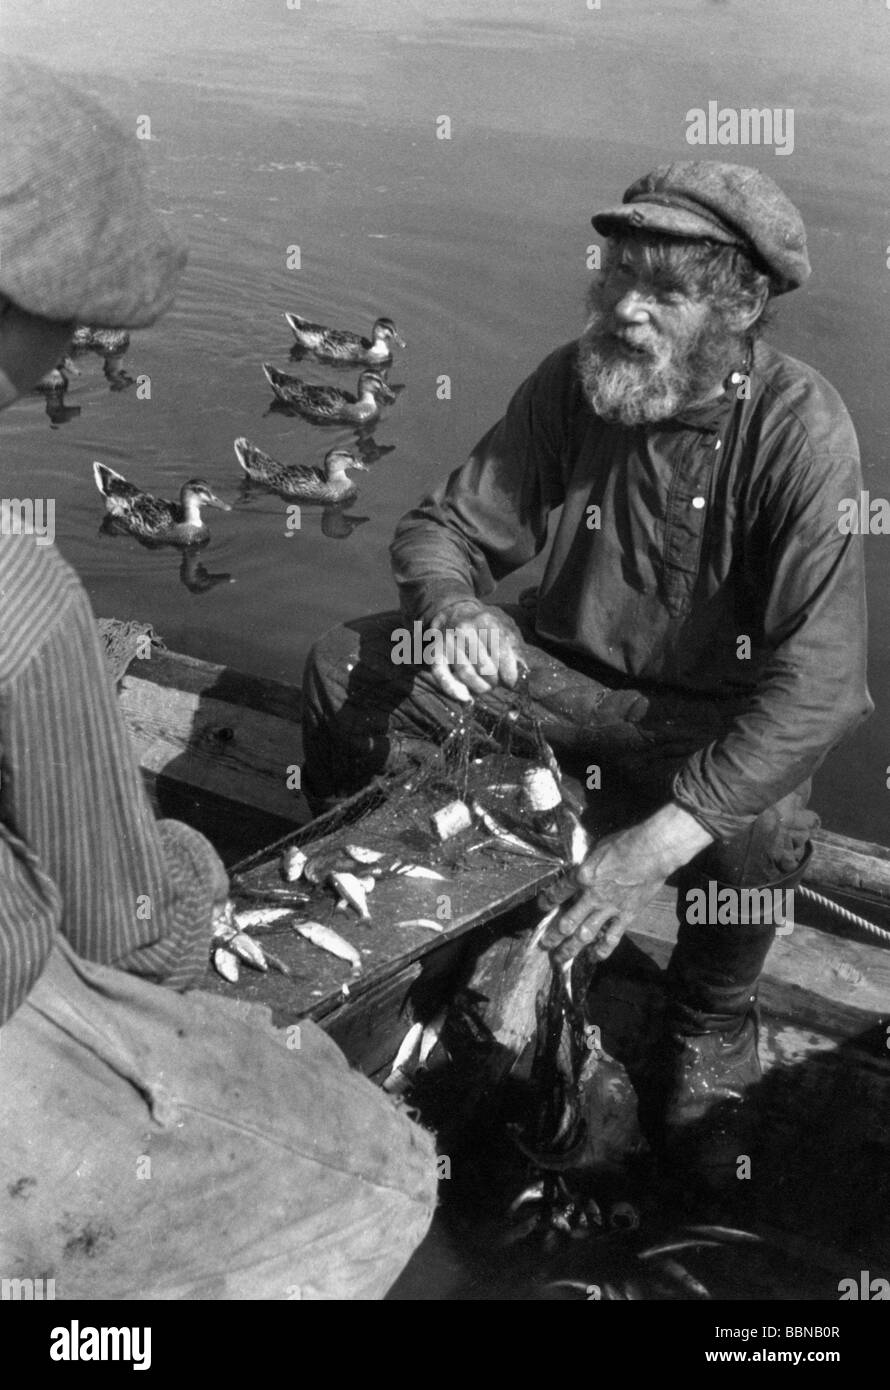 geography / travel, Russia, people, Russian fisherman at Lake Ilmen, September 1941, Additional-Rights-Clearances - Stock Image